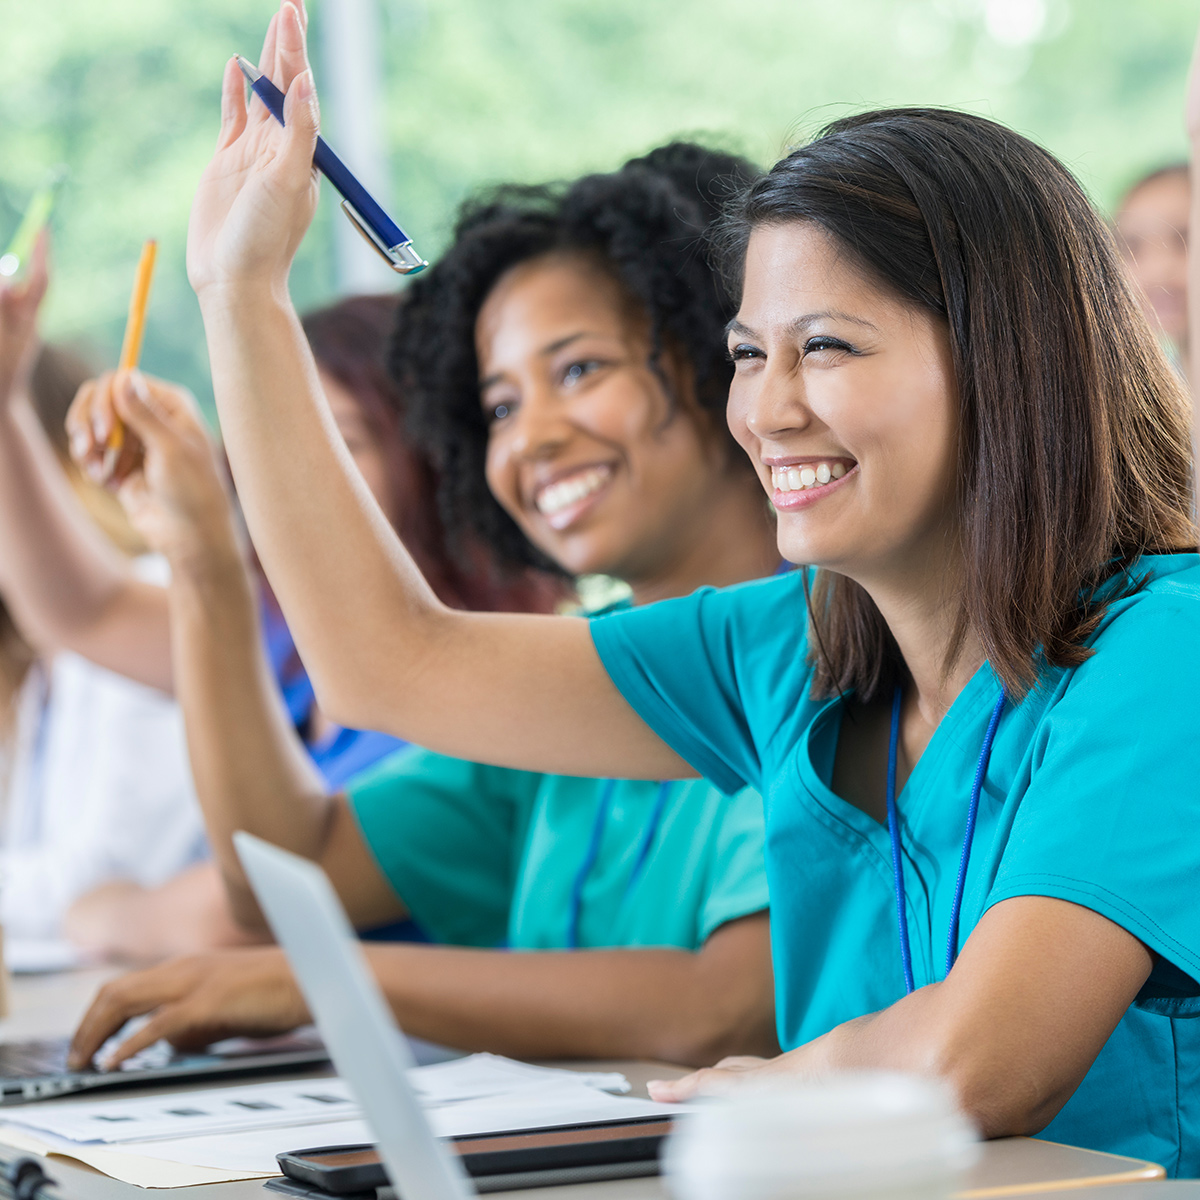 smiling women in scrubs in classroom setting, raising hands